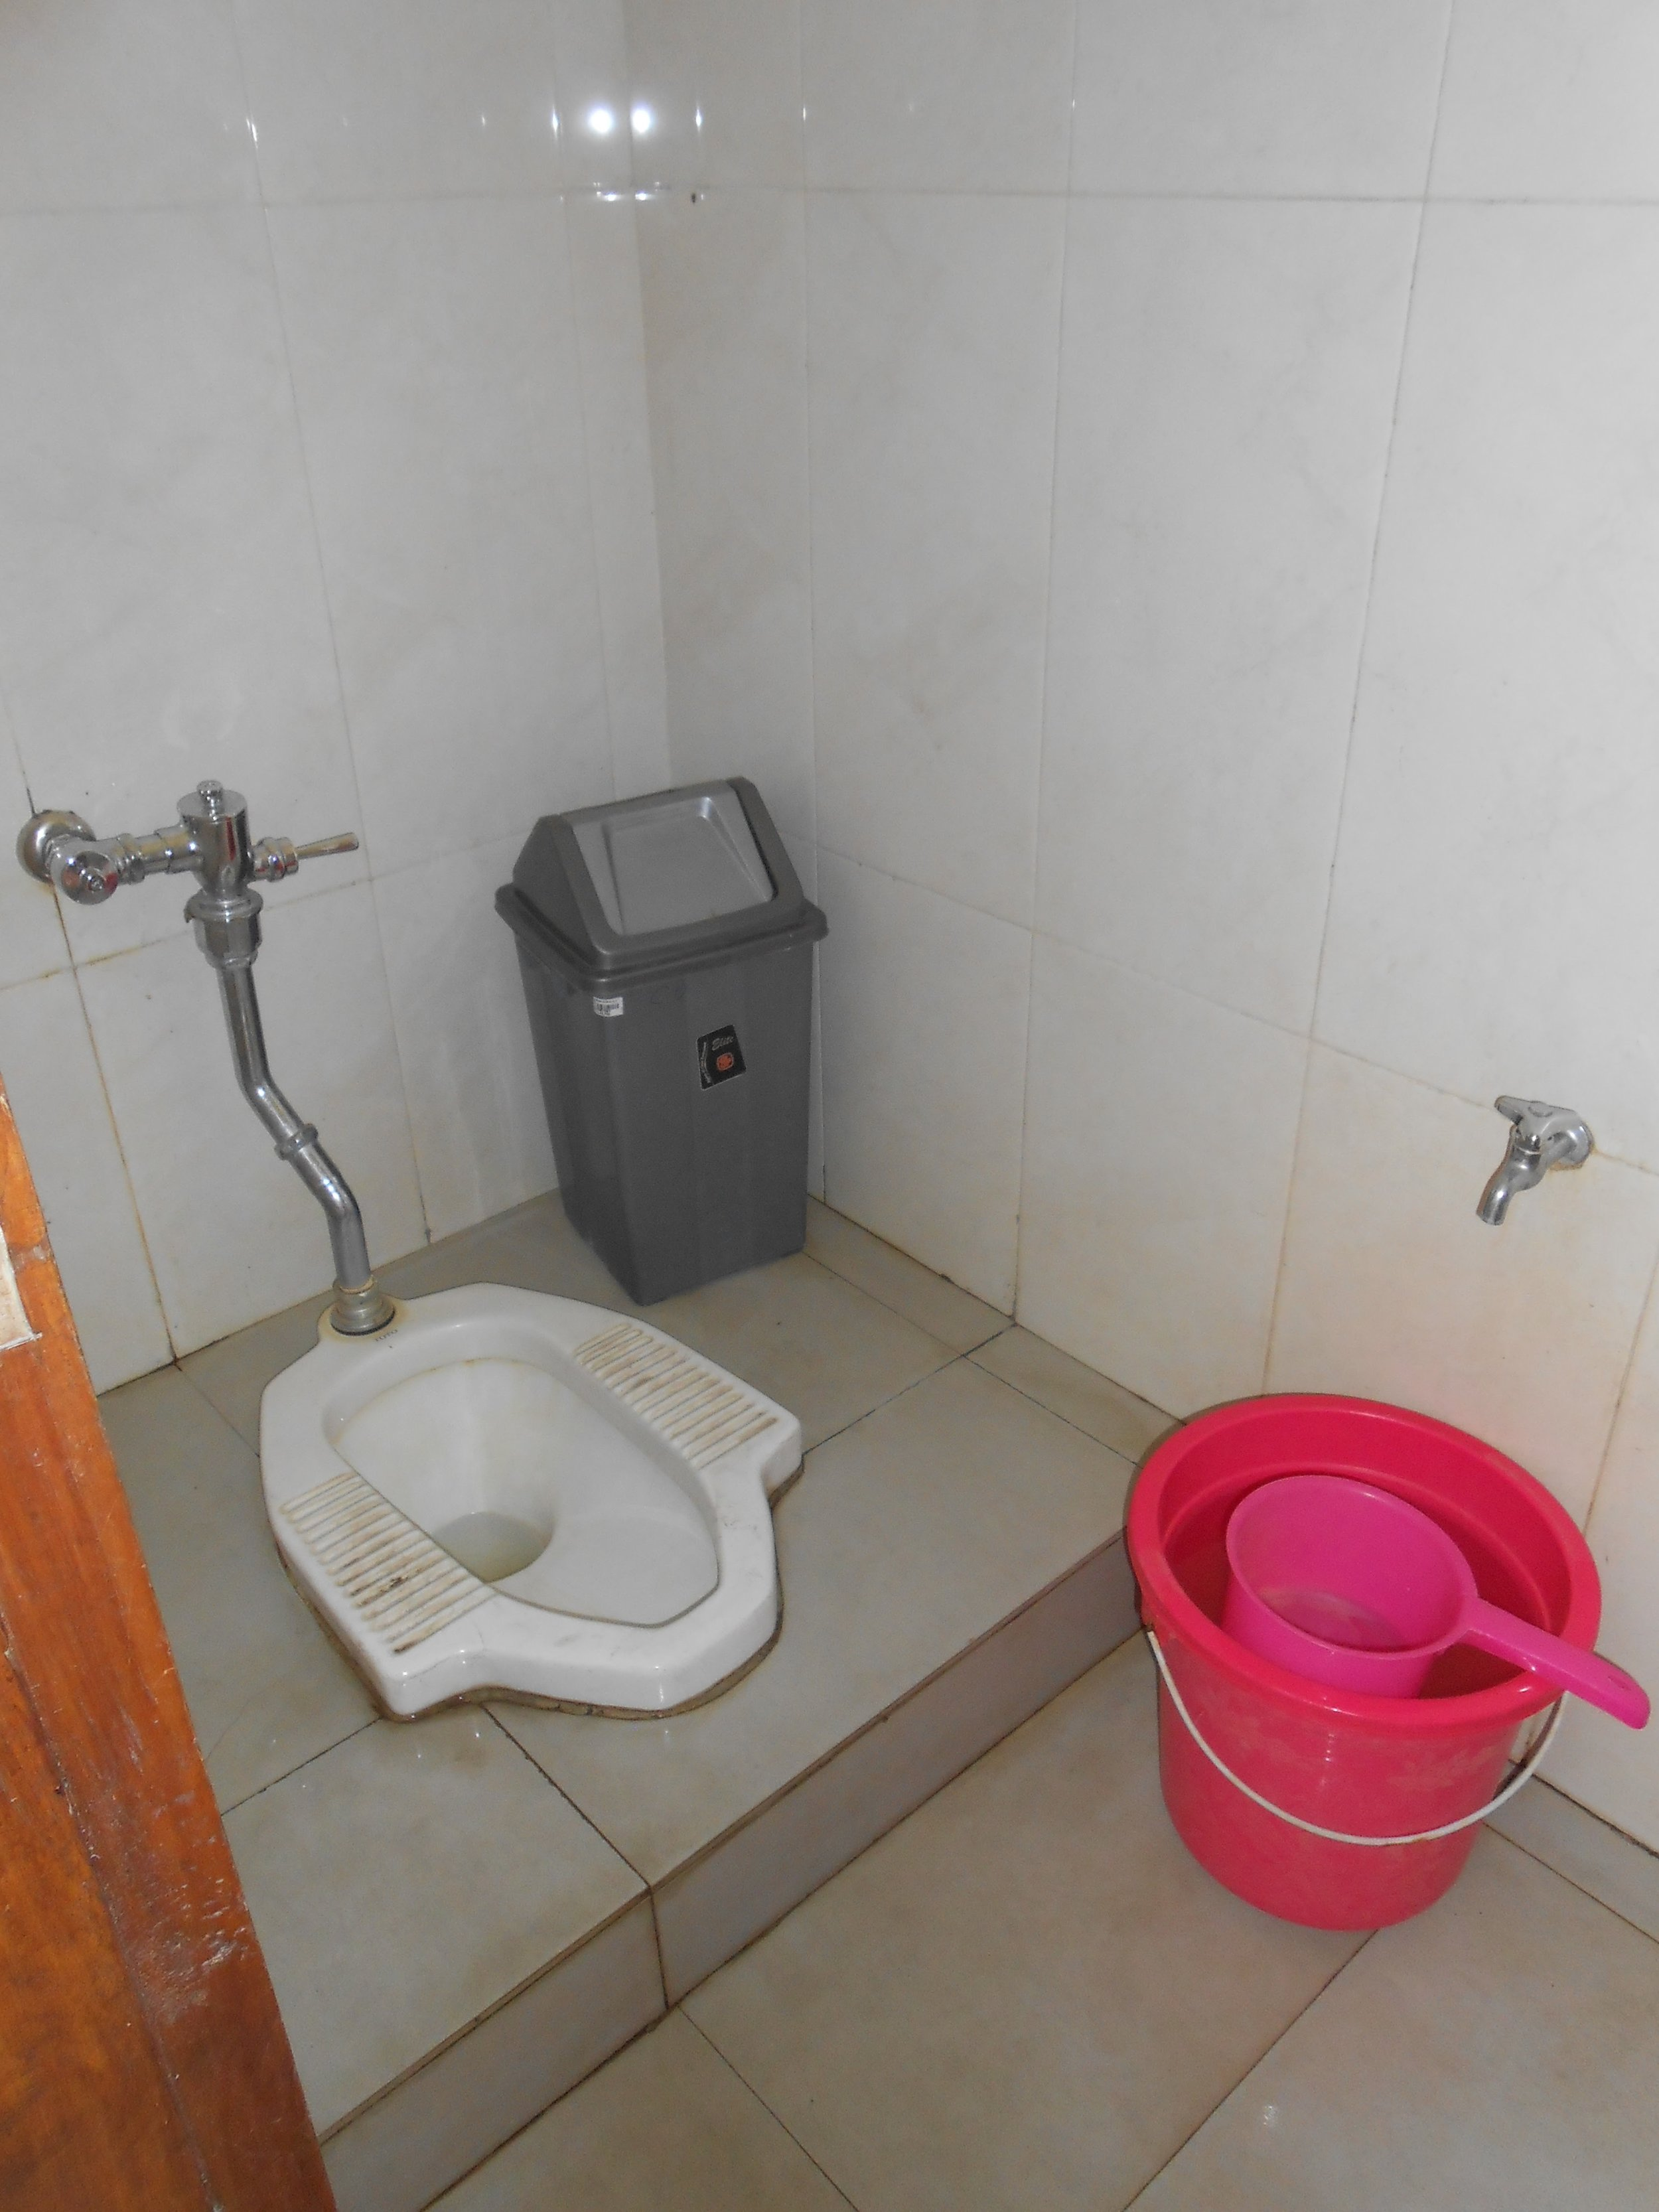 Indonesia squat toilet with water bucket